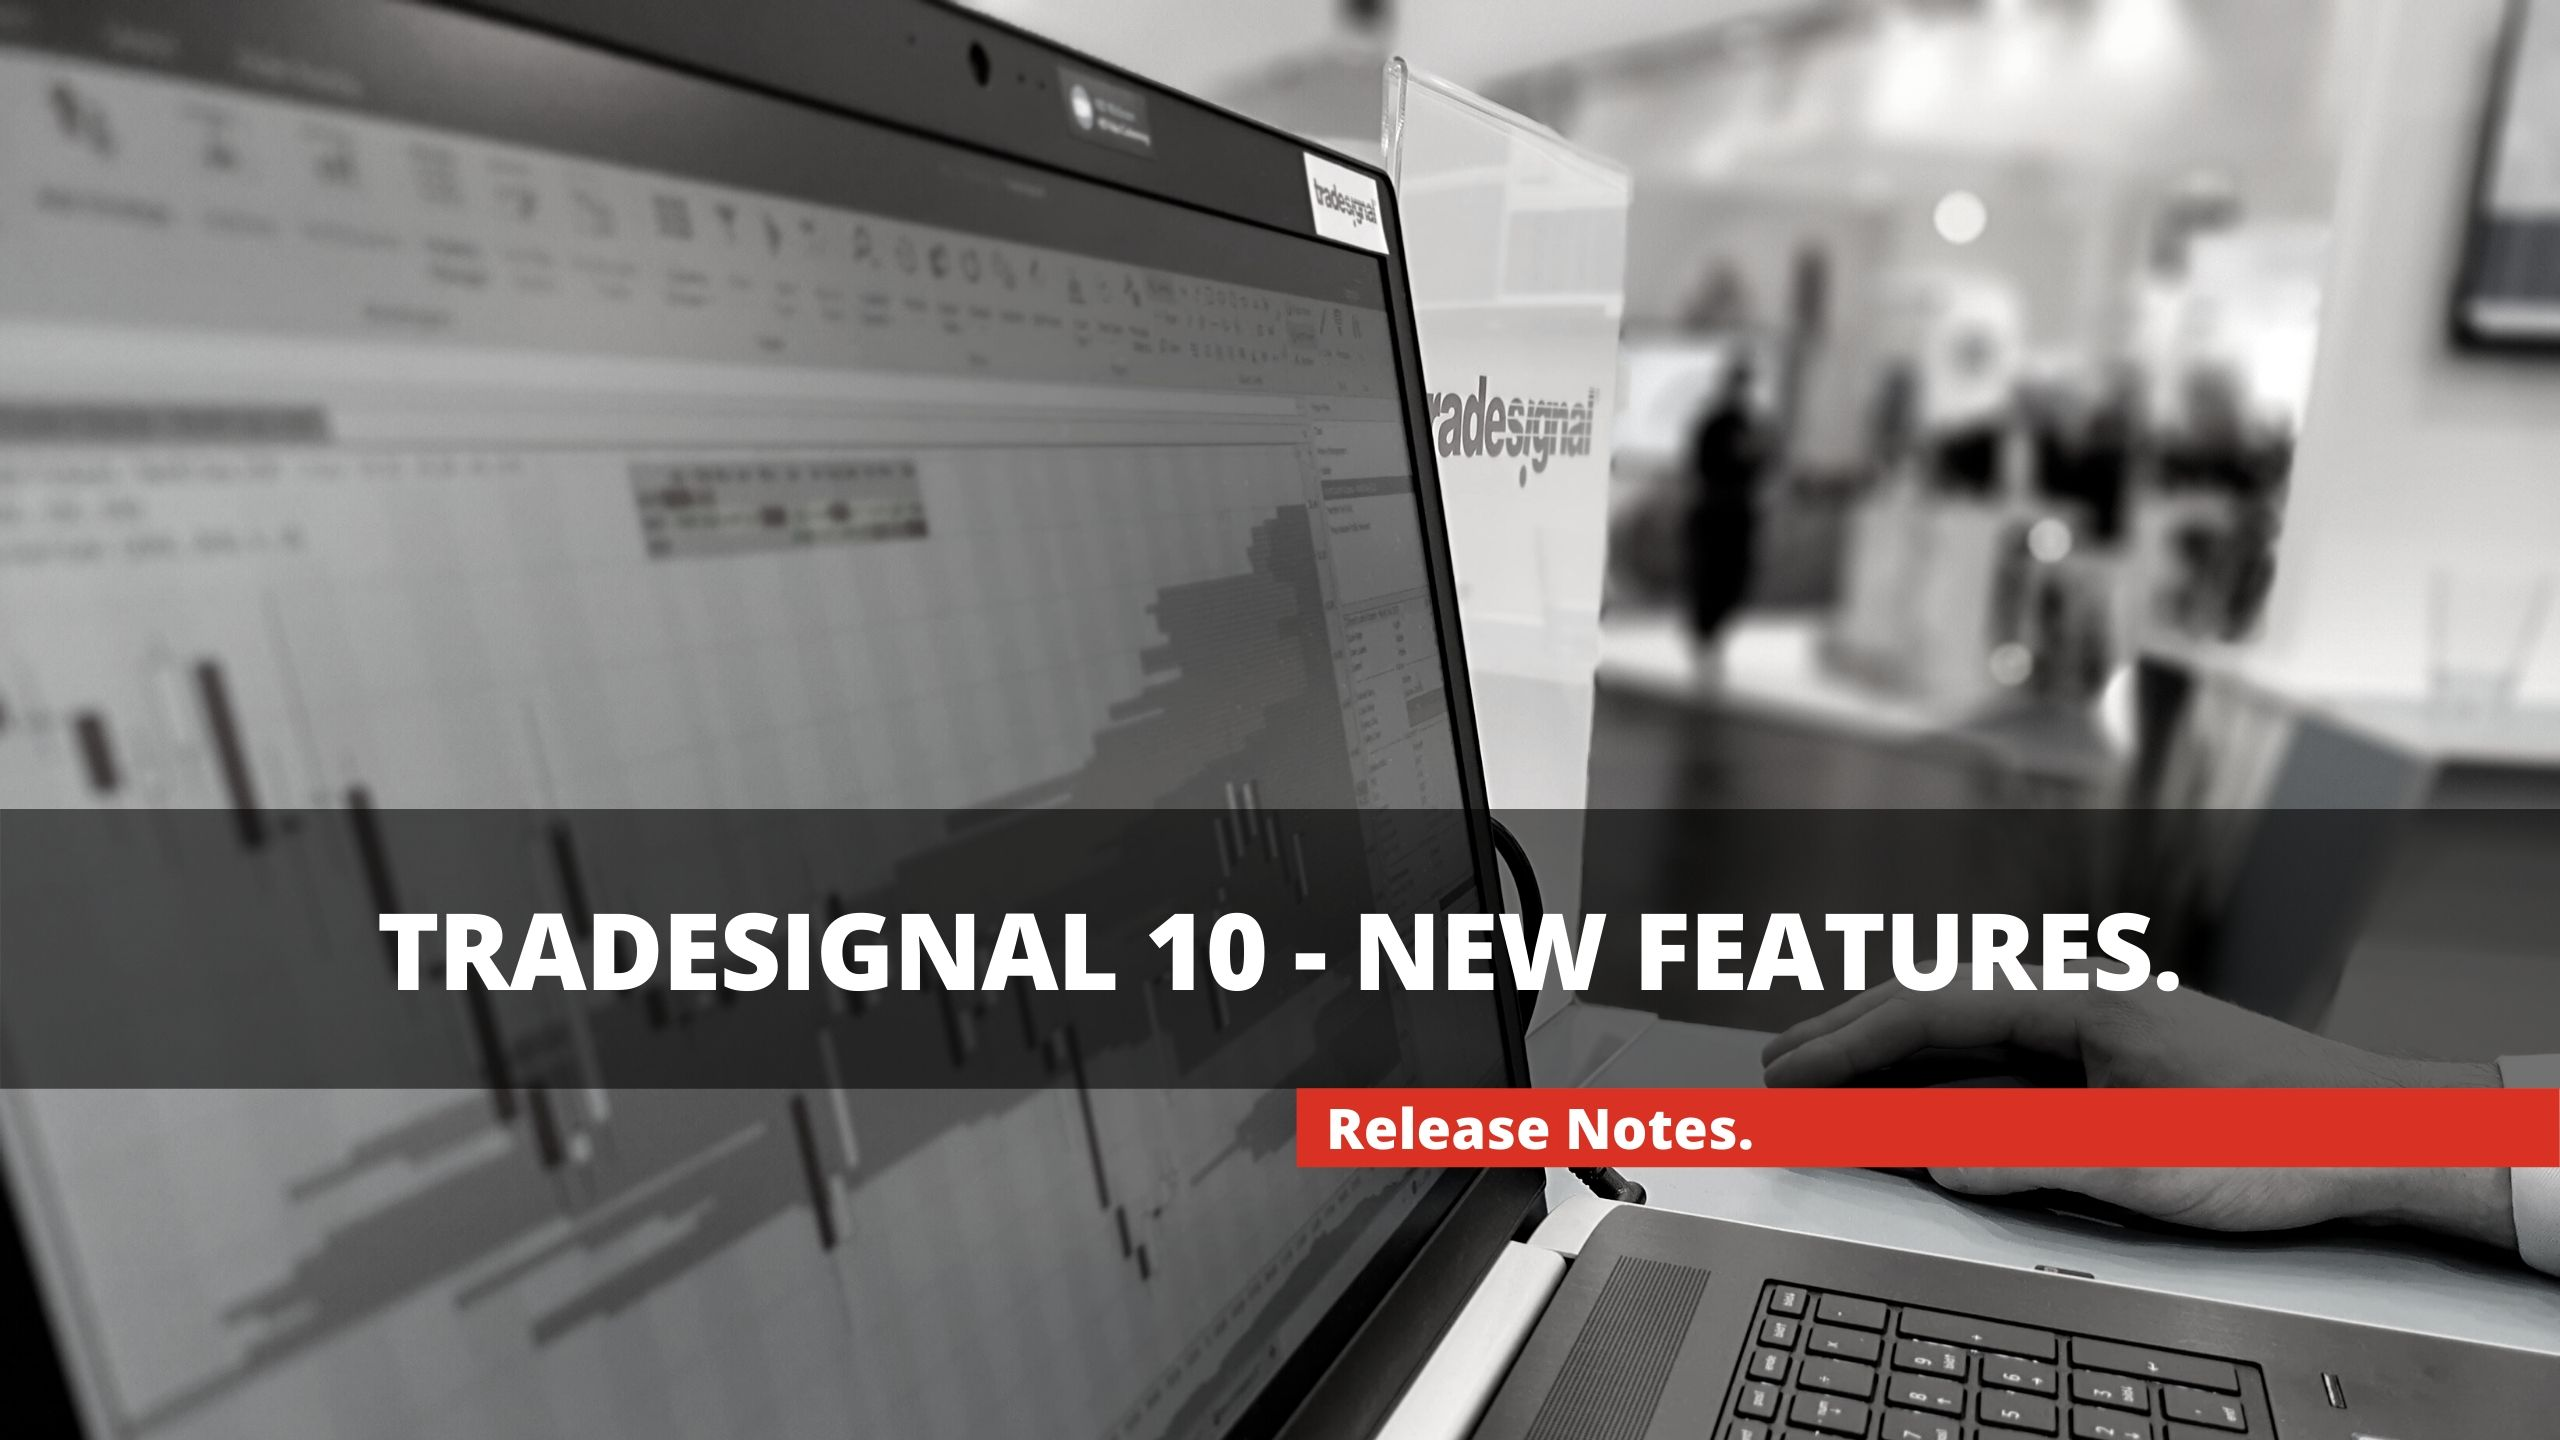 TRADESIGNAL 10 – NEW FEATURES